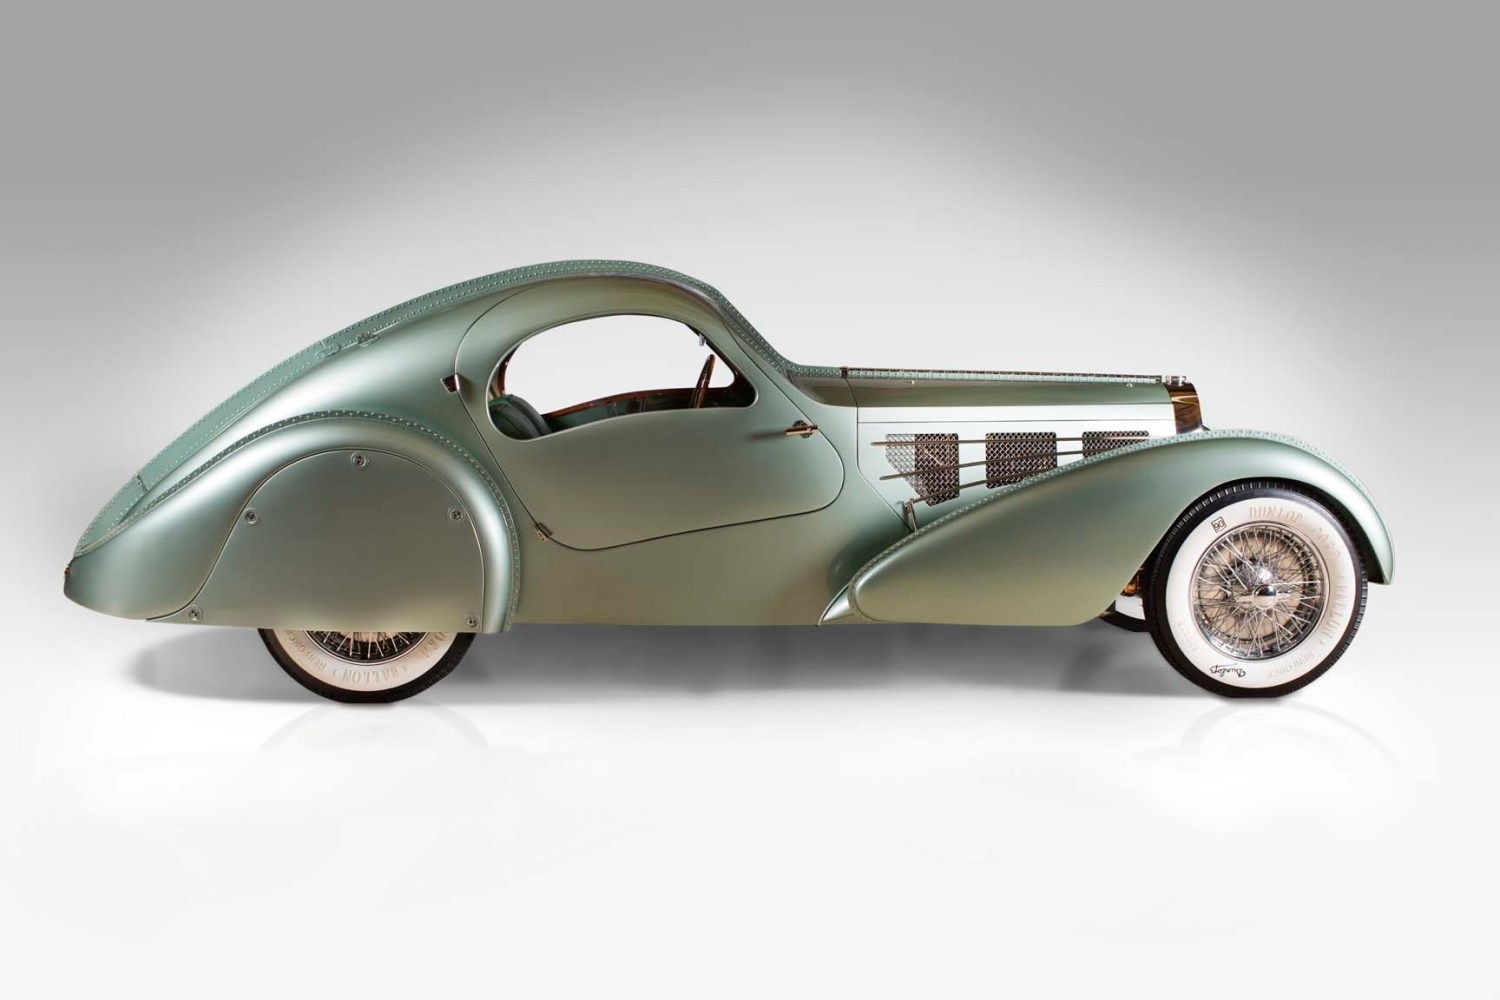 Carros de sonho. 1935, Bugatti Type 57S Compétition Coupé Aerolithe recreation